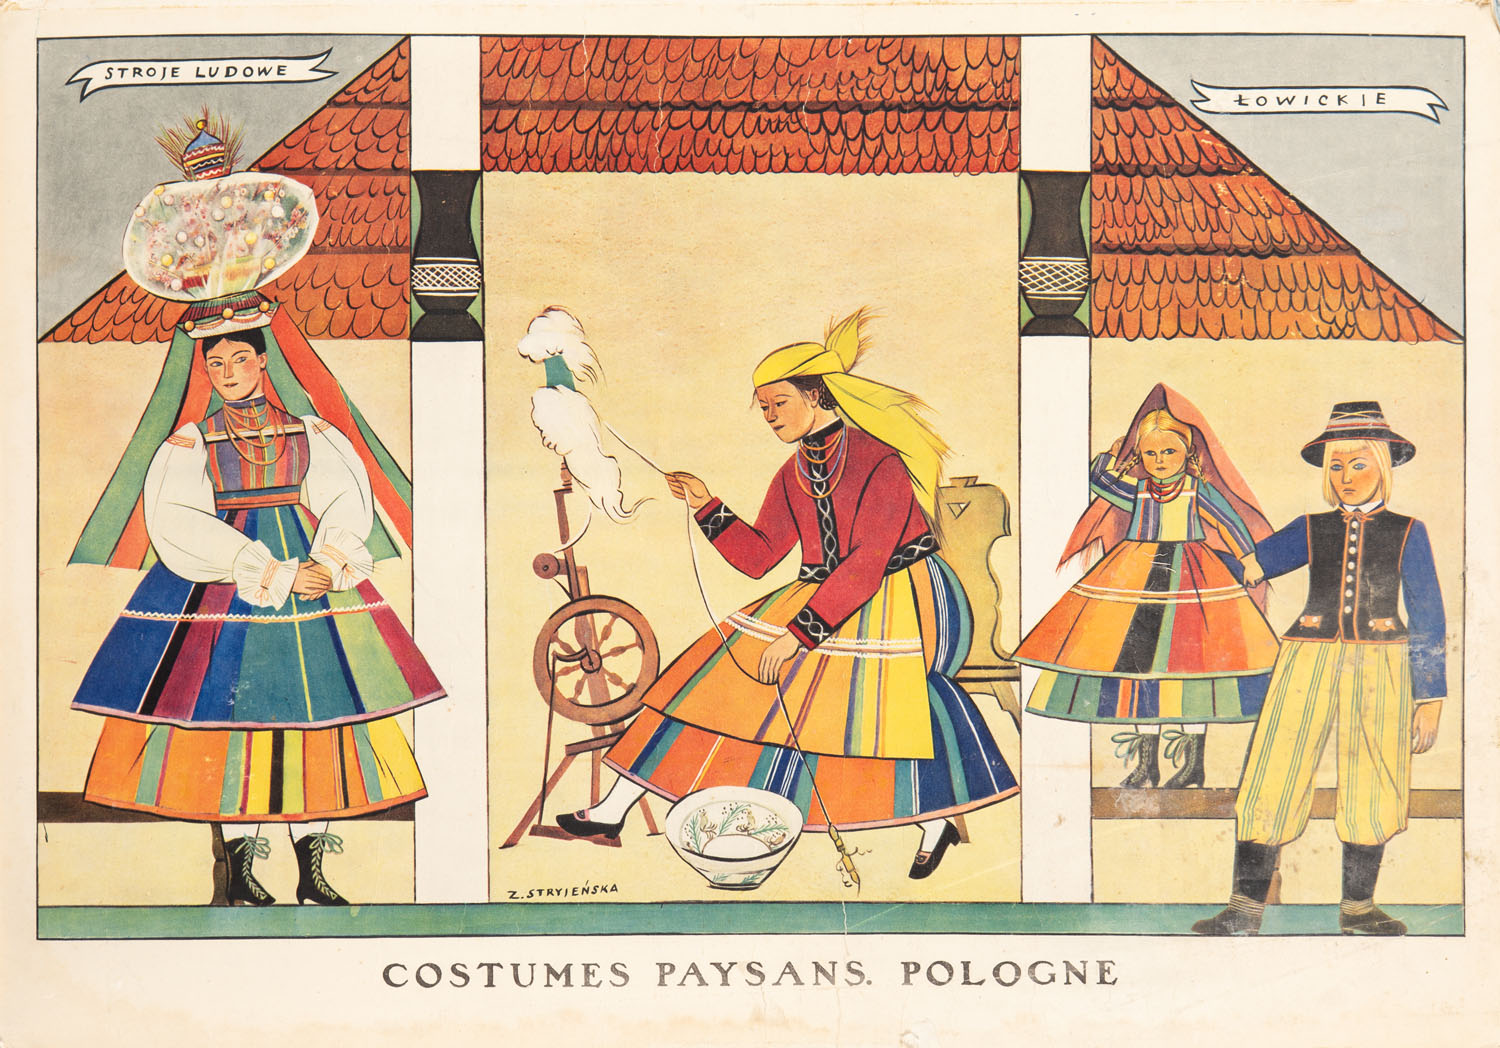 """""""Stroje ludowe łowickie"""" (Costumes paysans. Pologne), 1933"""